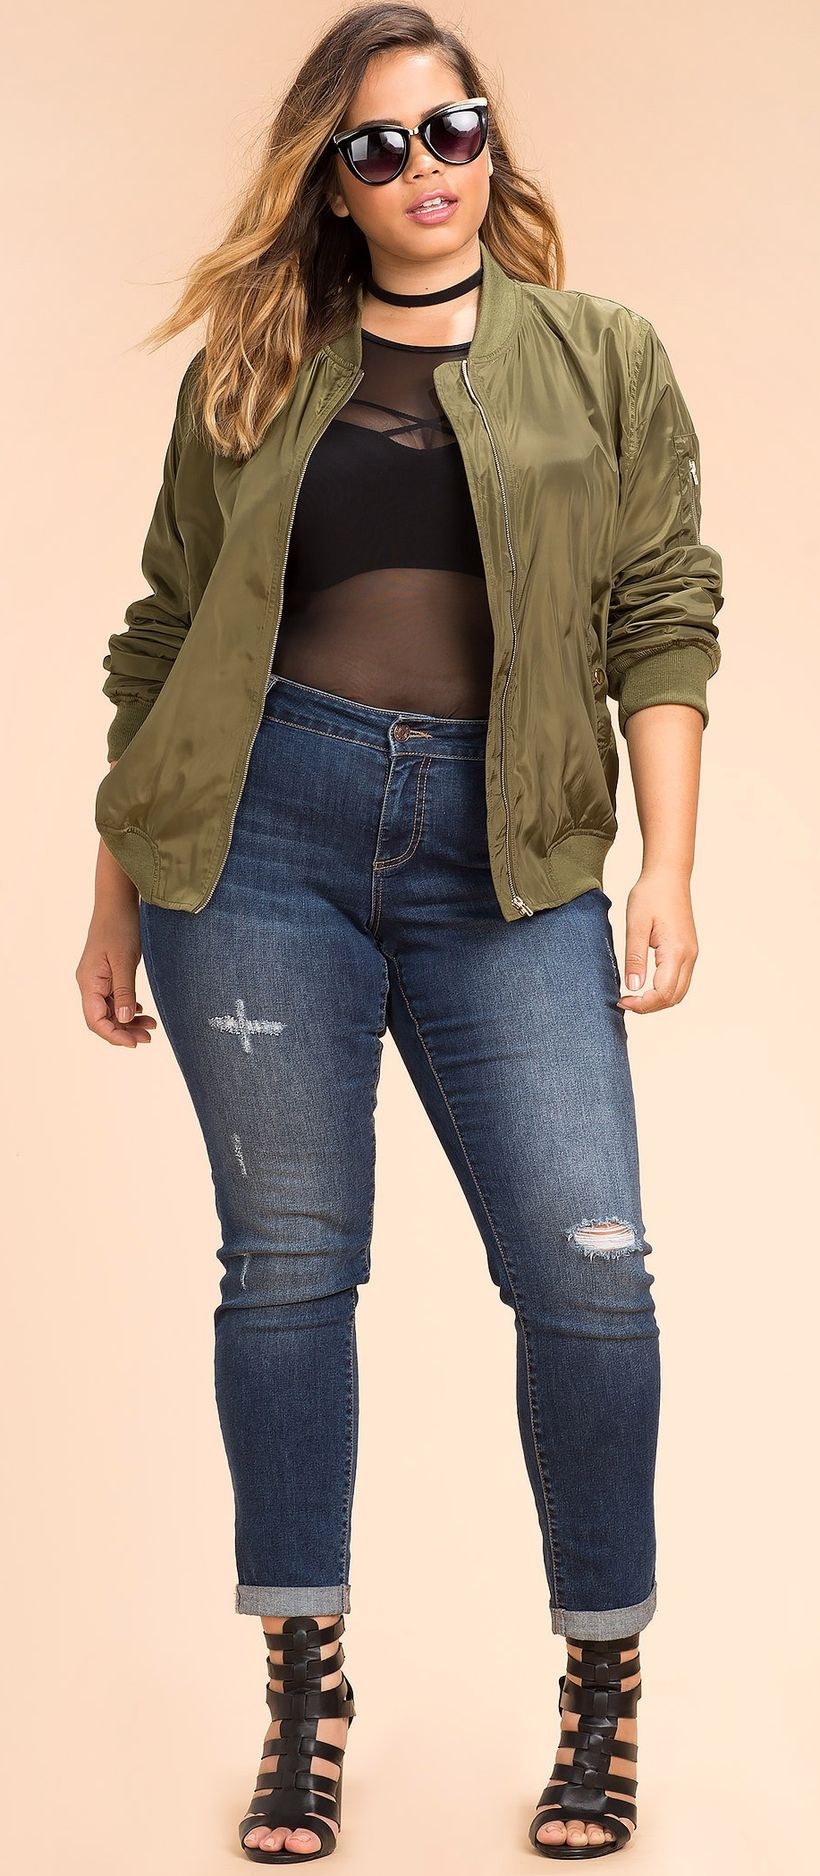 Stylish plus size outfits for winter 2017 105